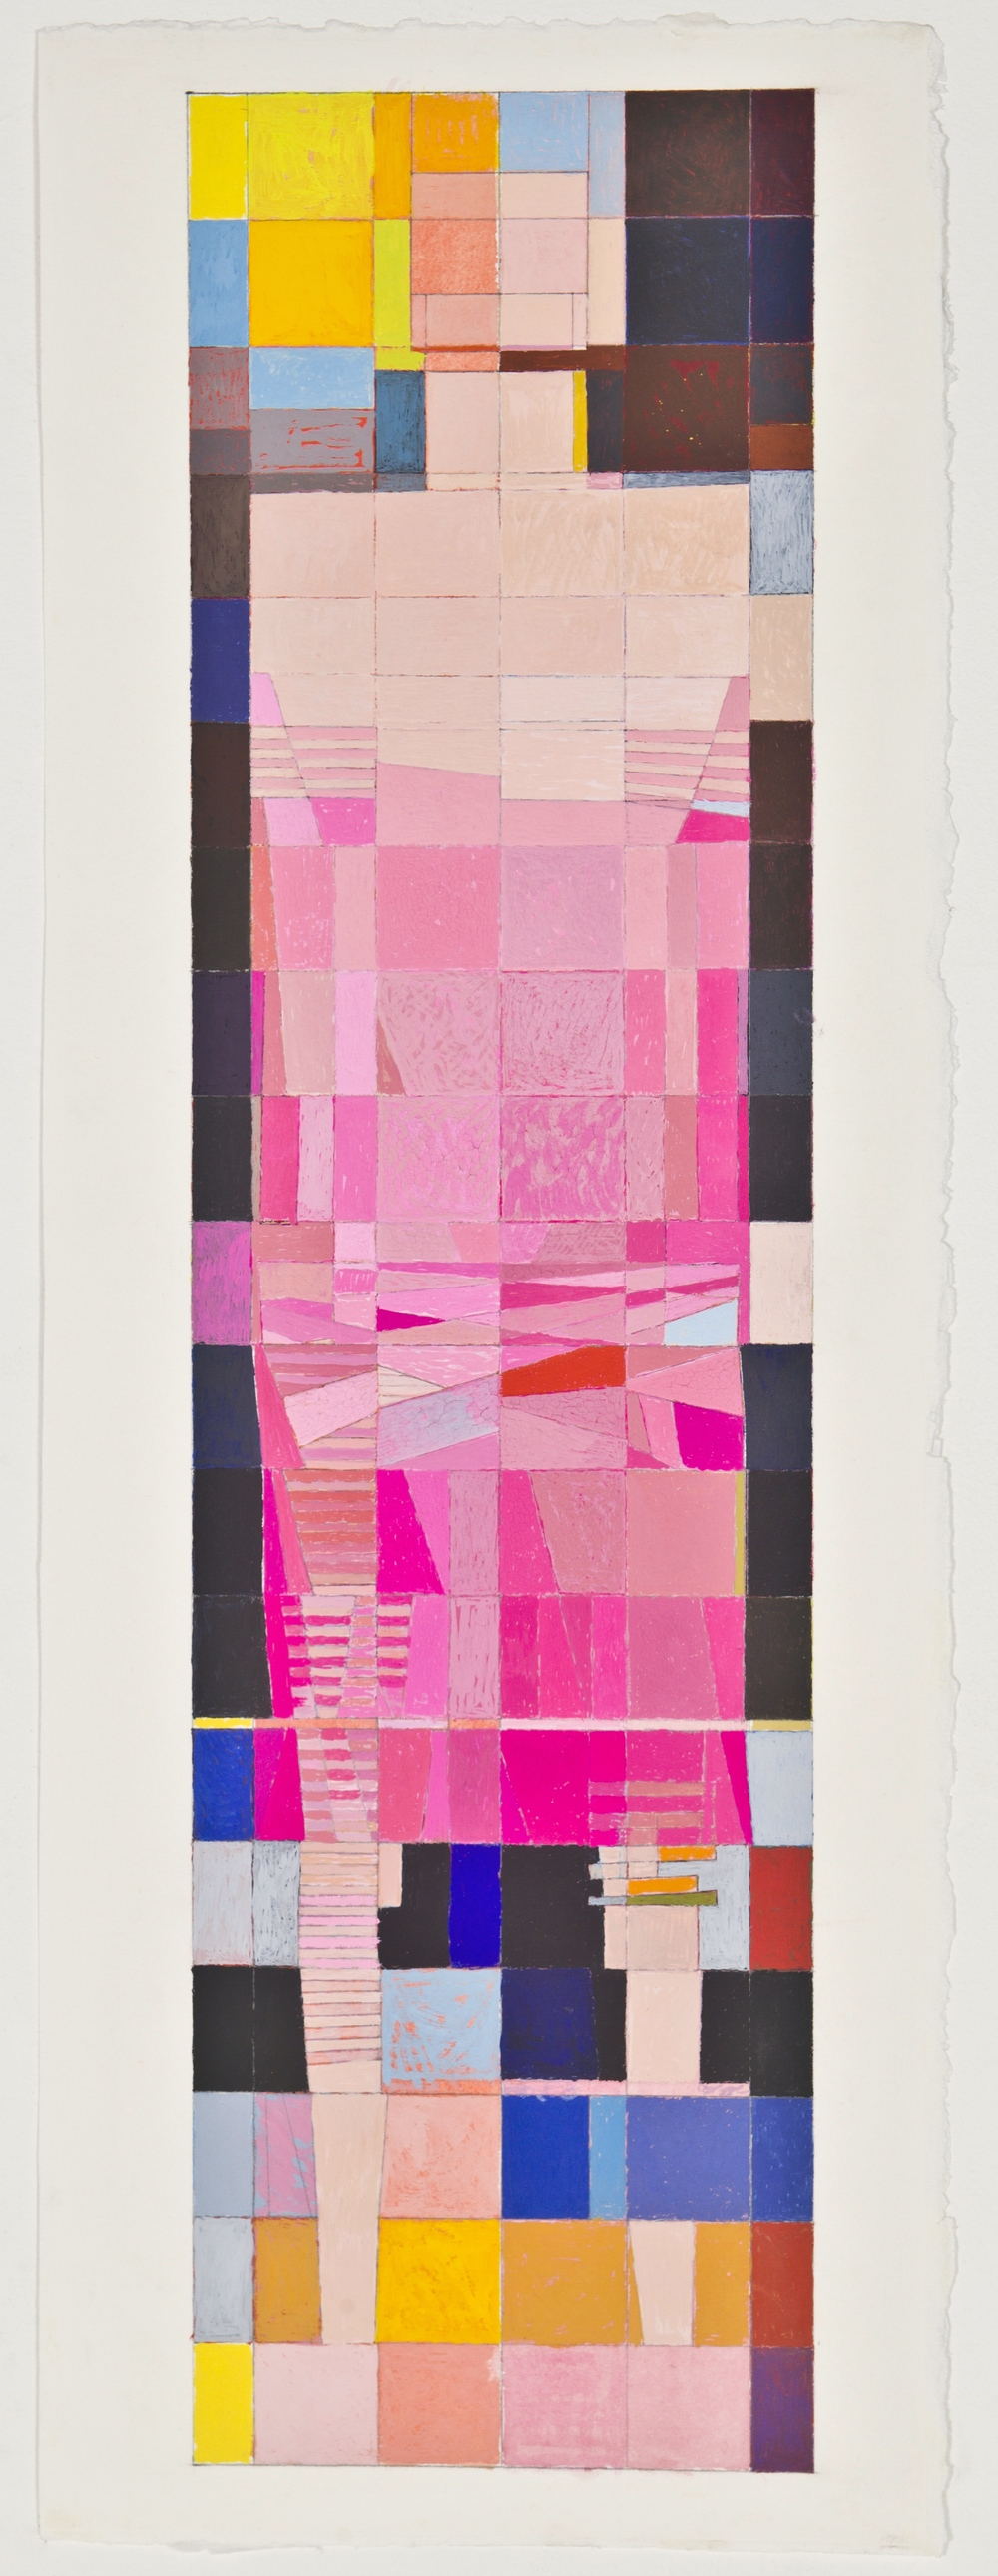 "Dress, 2012, gouache on paper, 28 1/2""x7 3/8"""